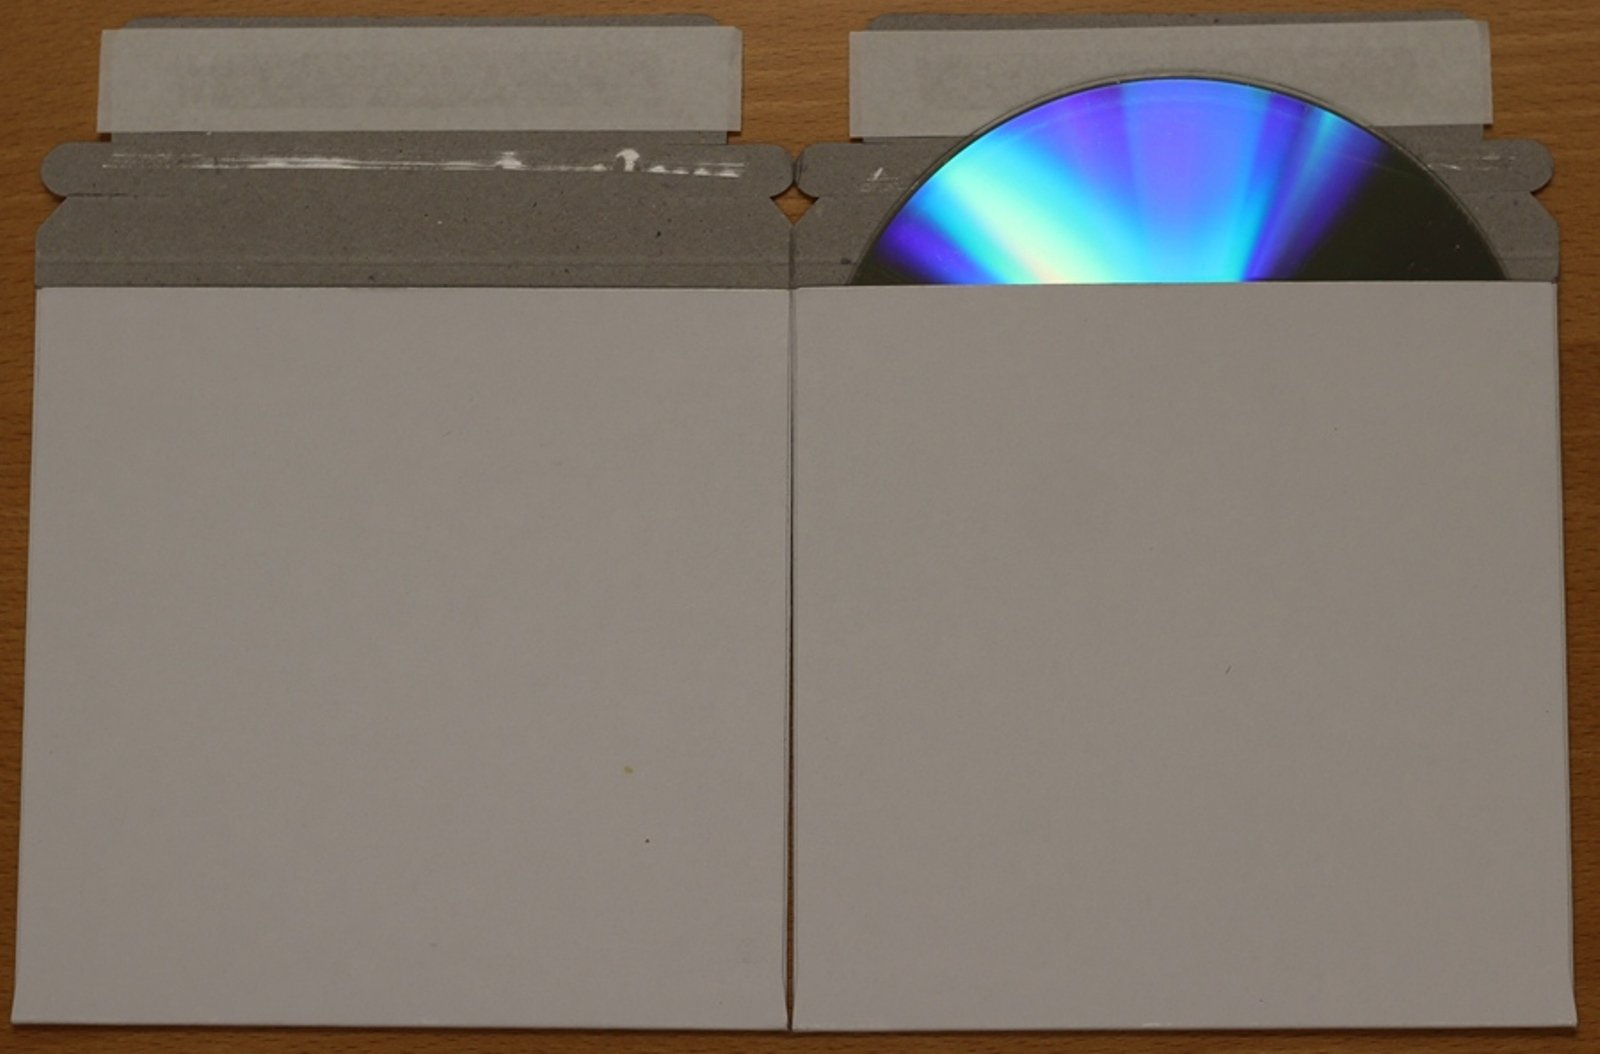 1,000 CD/DVD White Cardboard Mailers, Self Seal Mailers with Flap (5 x 5)